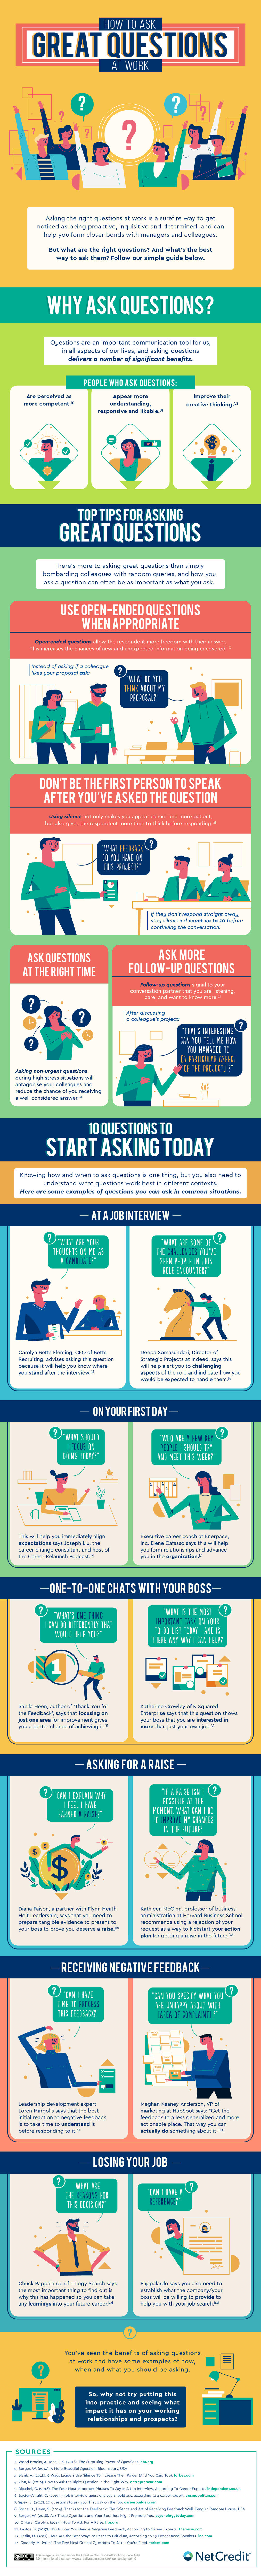 infographic how to ask great questions at work